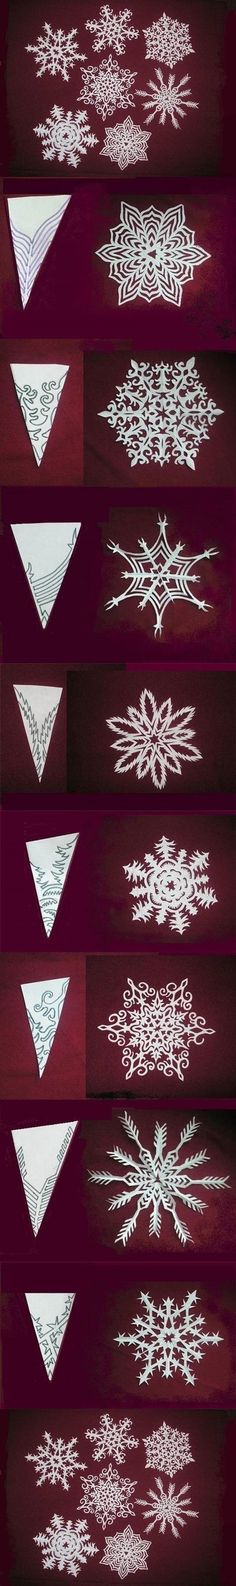 paper Snowflakes pattern - Aren't these amazing?!